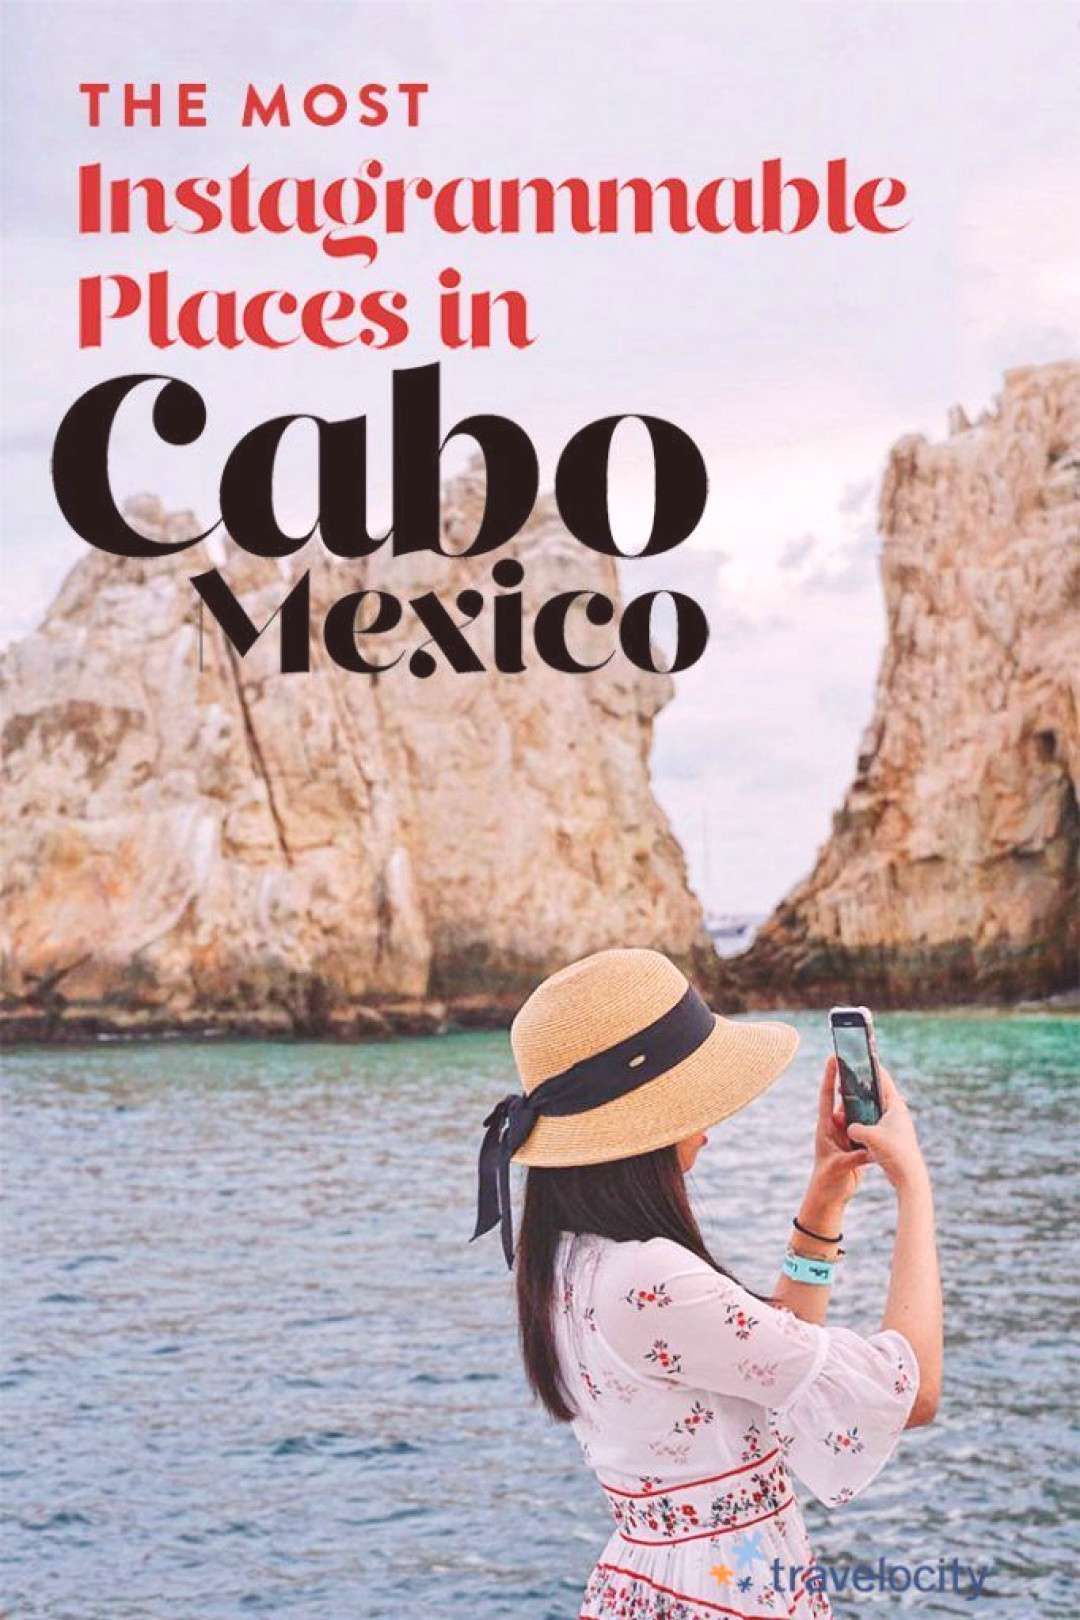 5 Instagrammable Things to Do in Cabo, Mexico | Travelocity the most instagrammable places in cabo